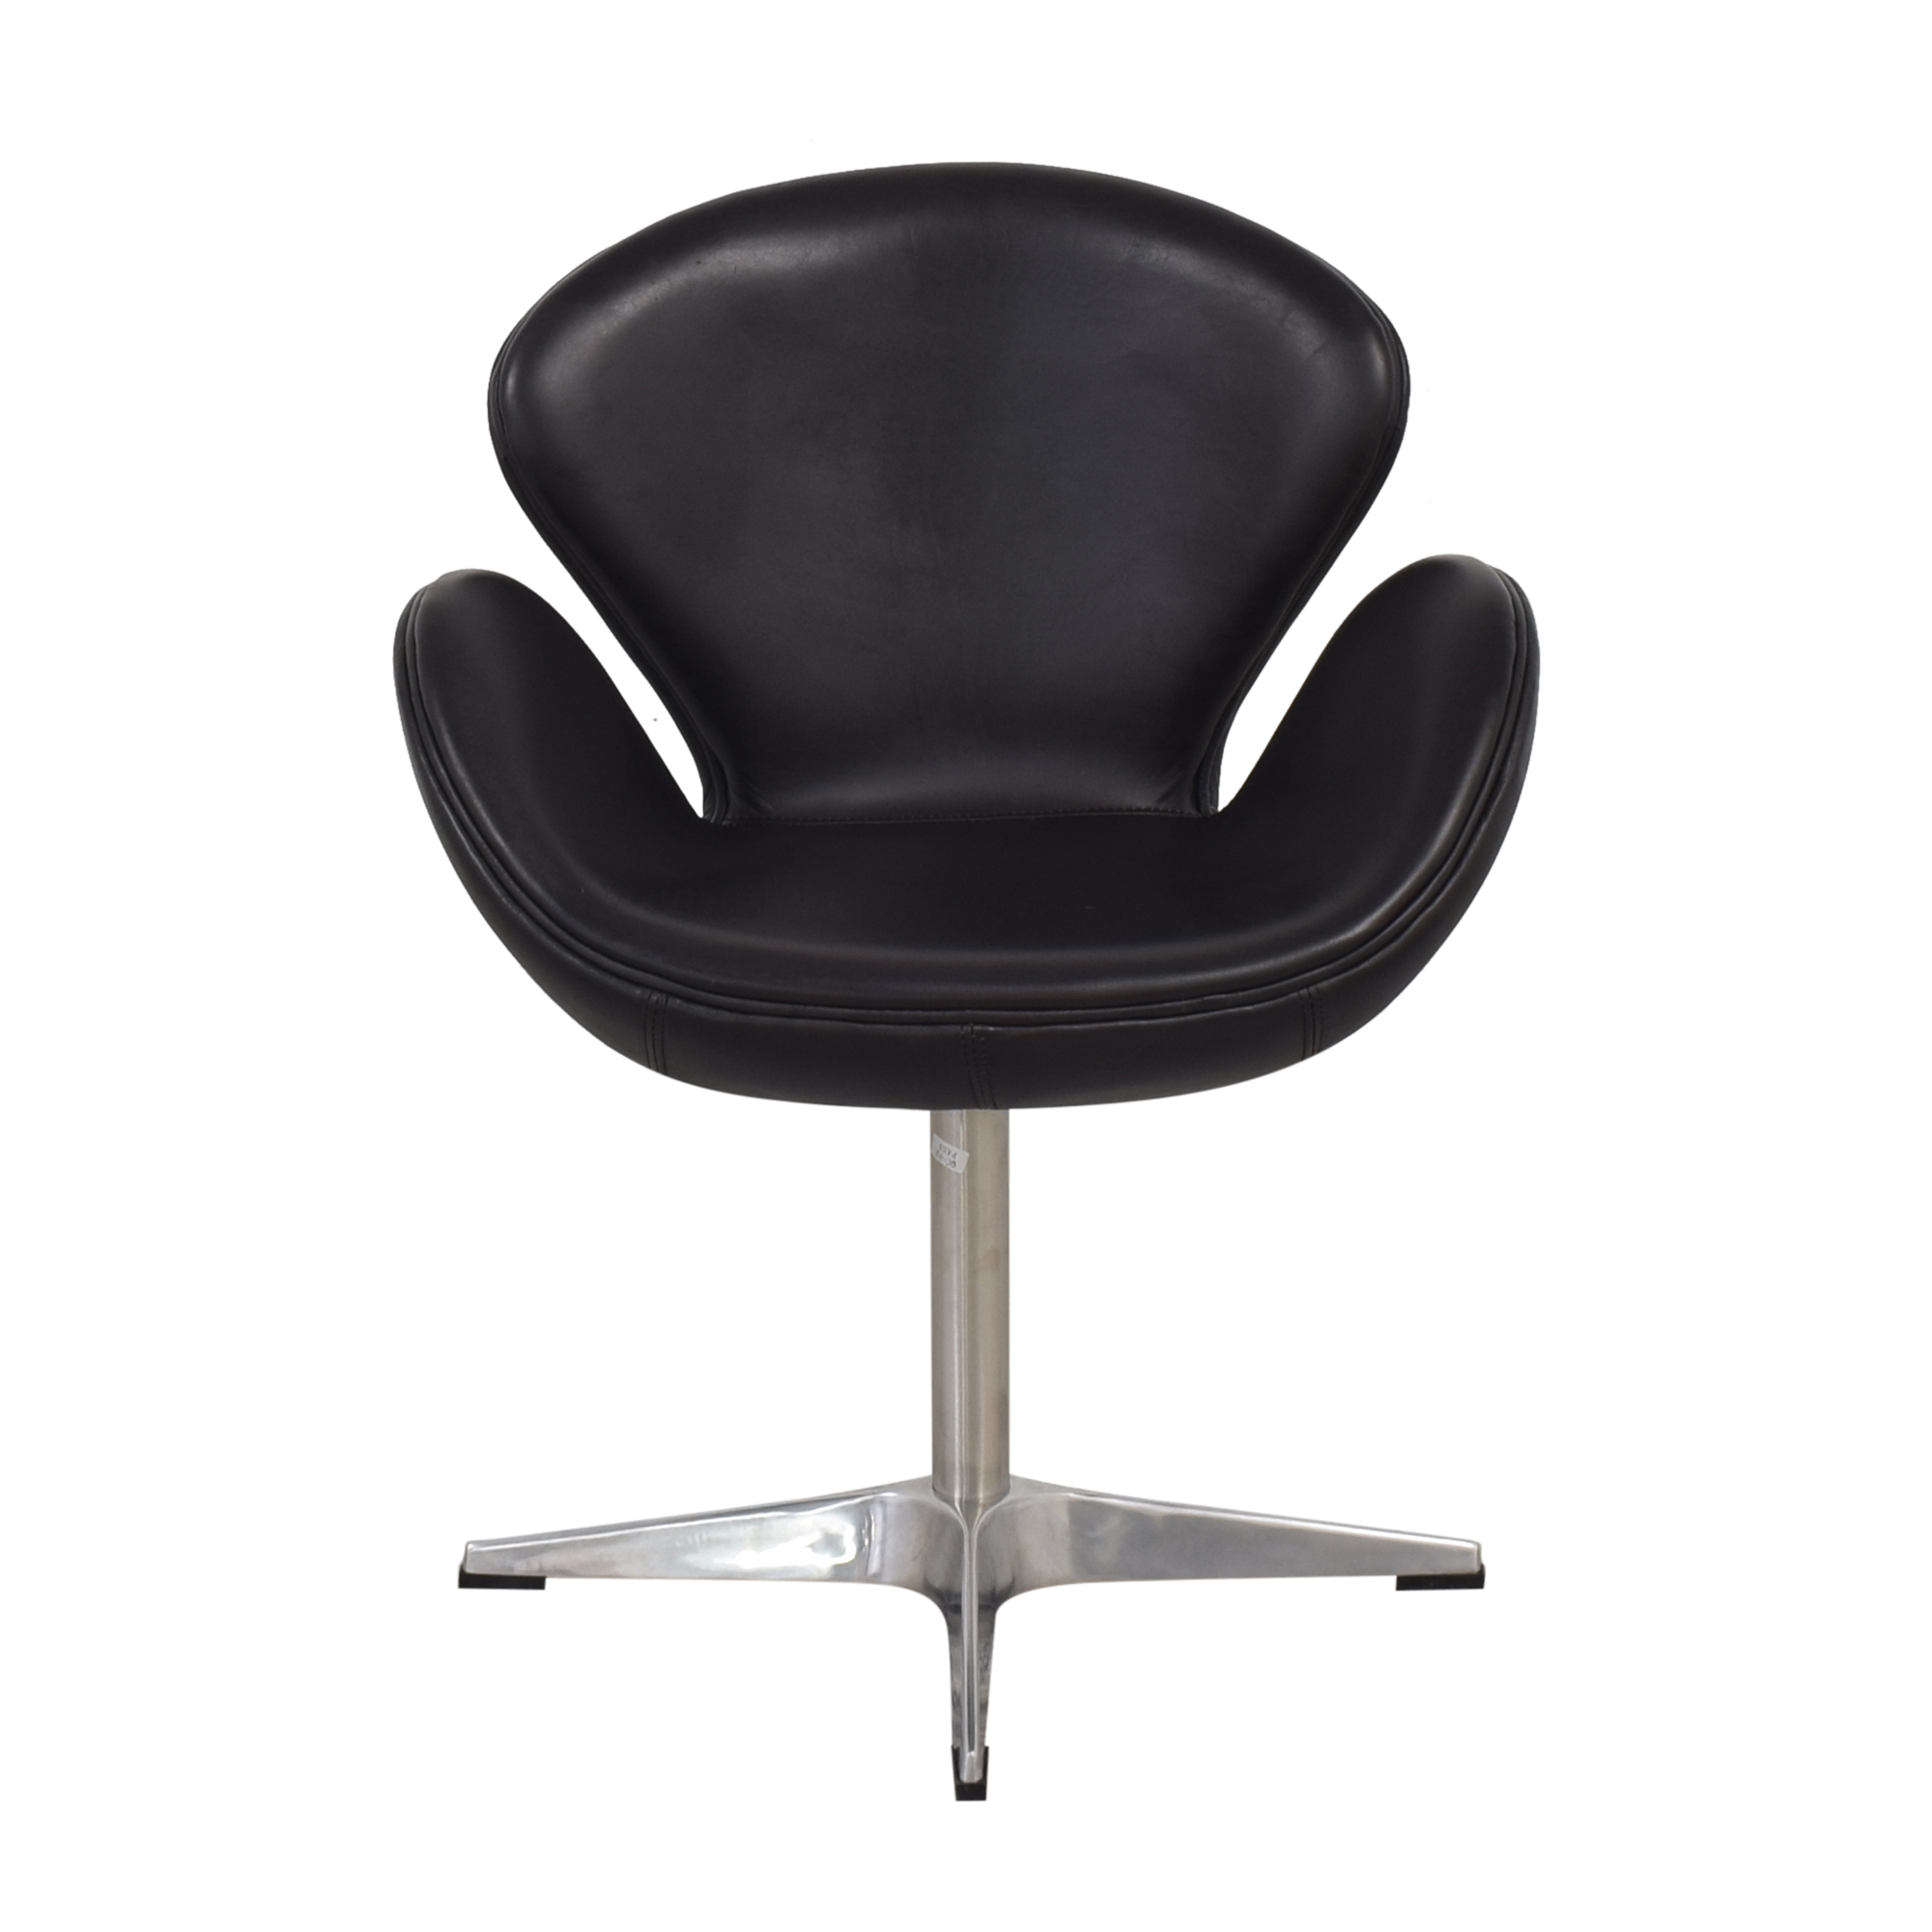 ABC Carpet & Home Jacobsen-Style Swan Chair sale